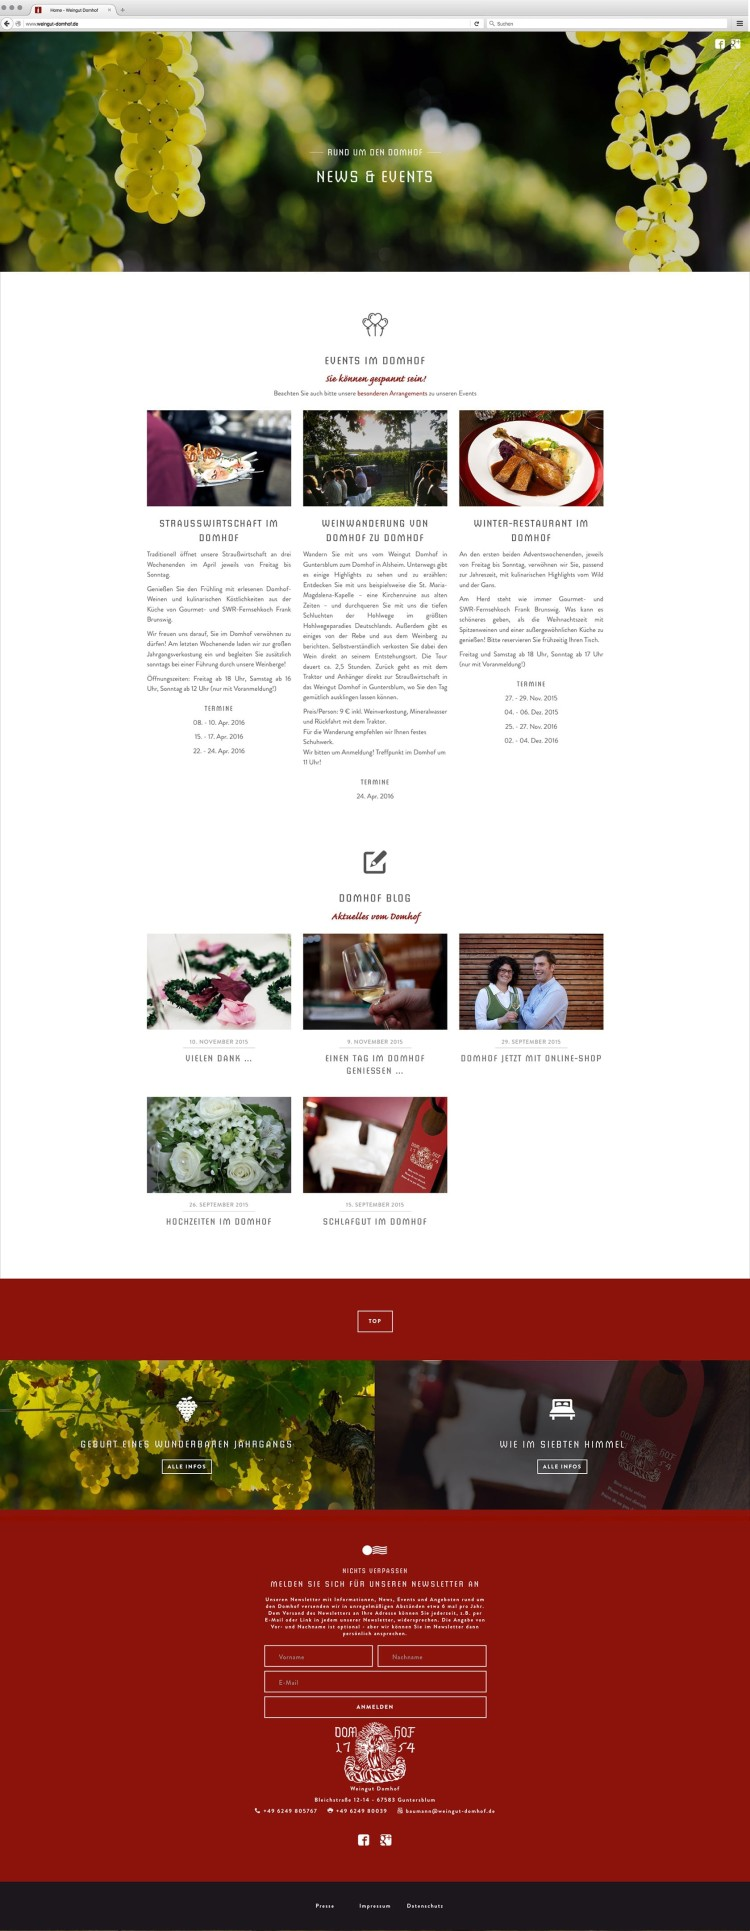 domhof_website_2015_3